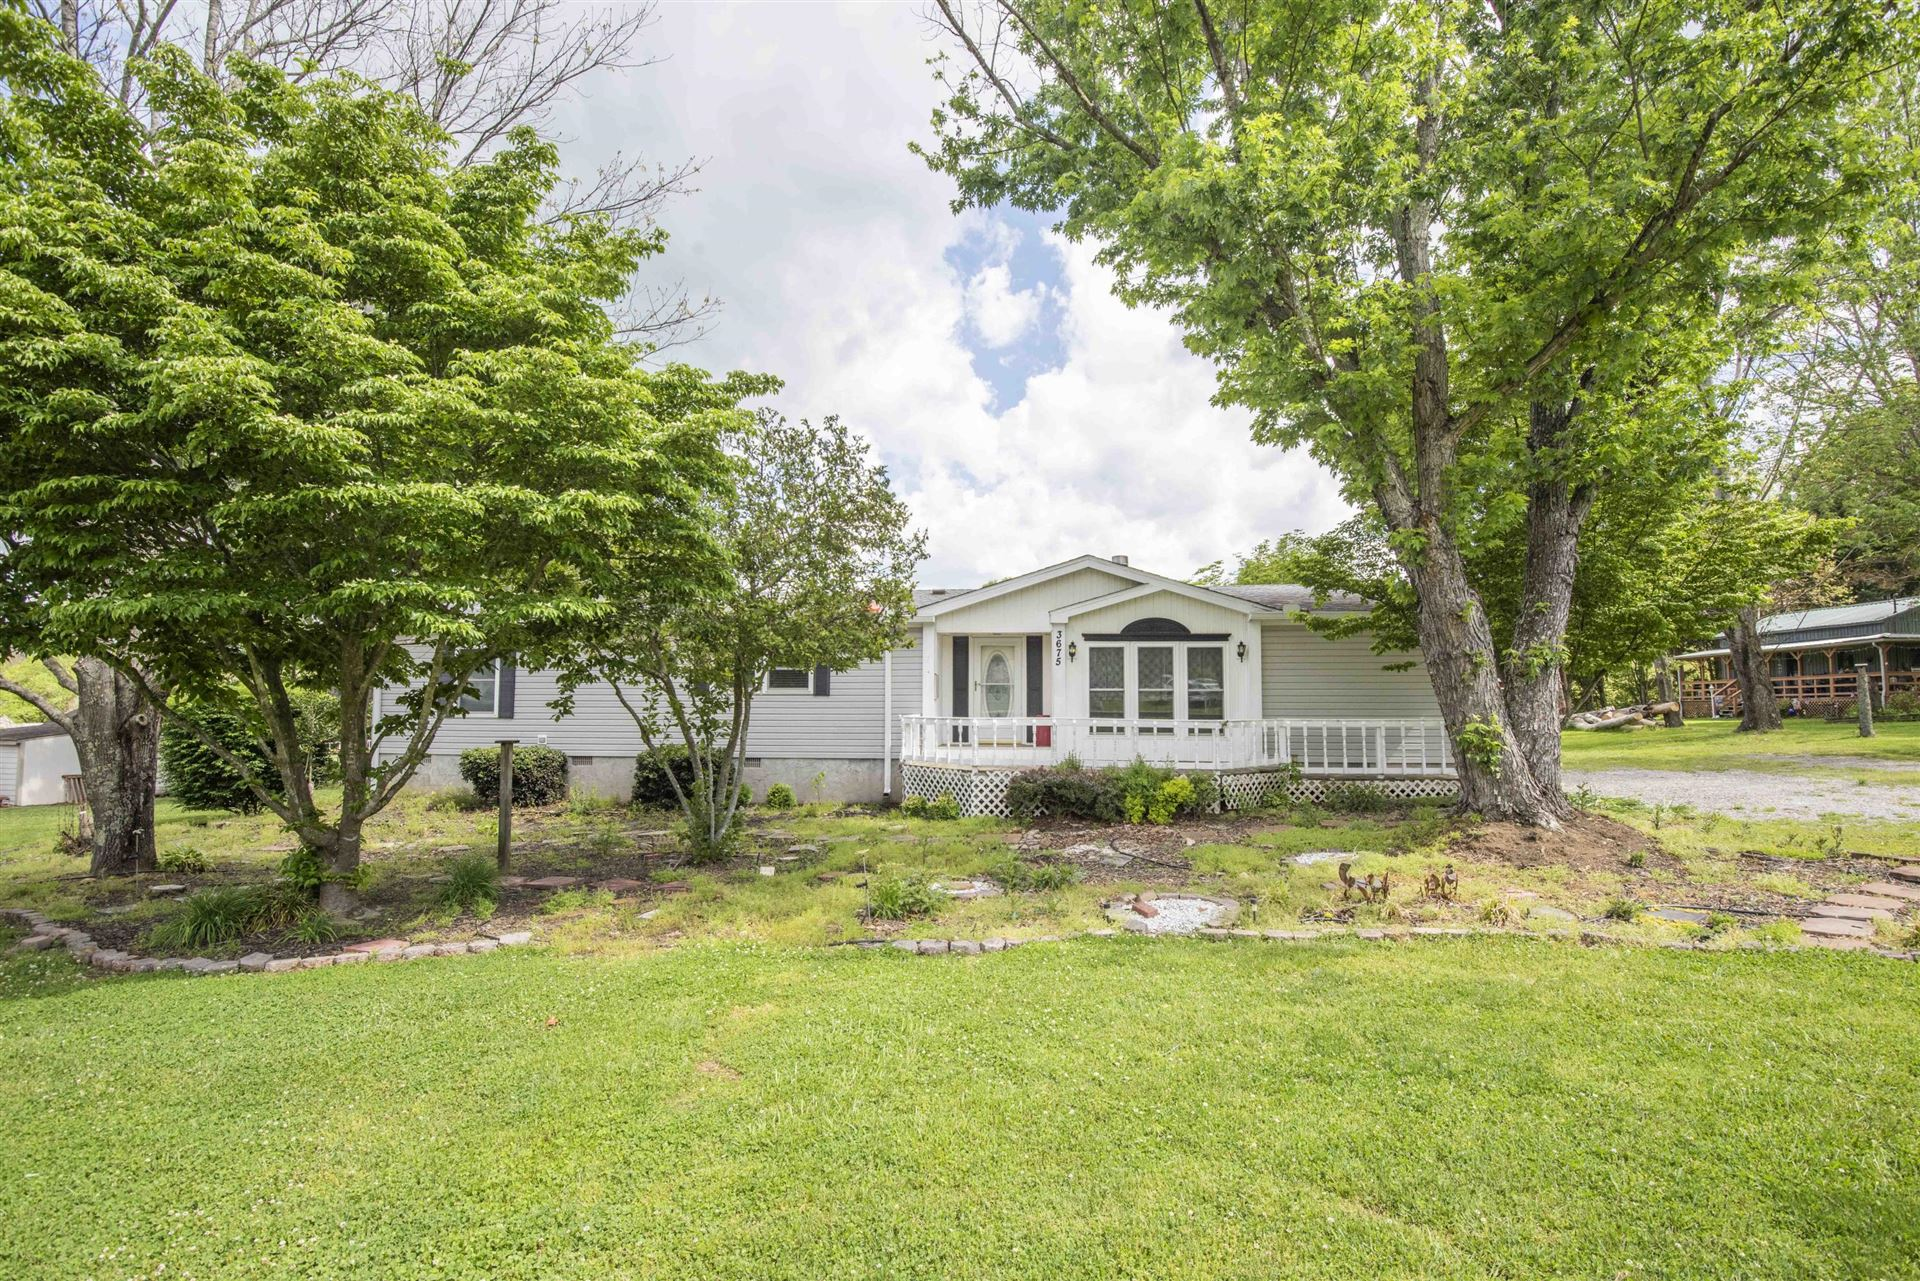 Photo of 3675 Valley View Rd, Sevierville, TN 37862 (MLS # 1152075)